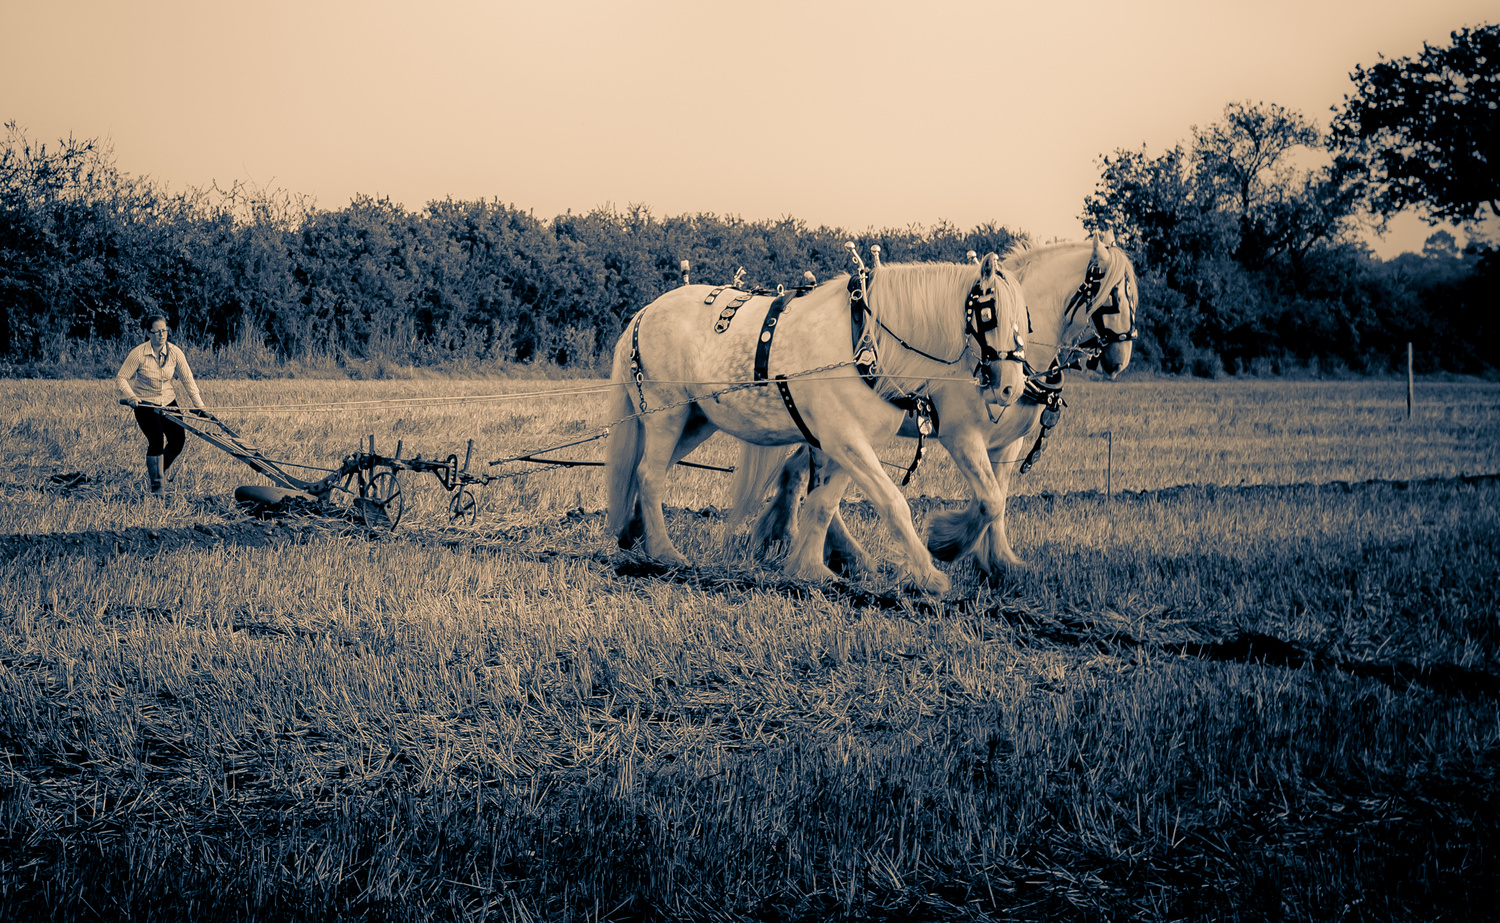 Ploughing with heavy horses by Chris Mummery